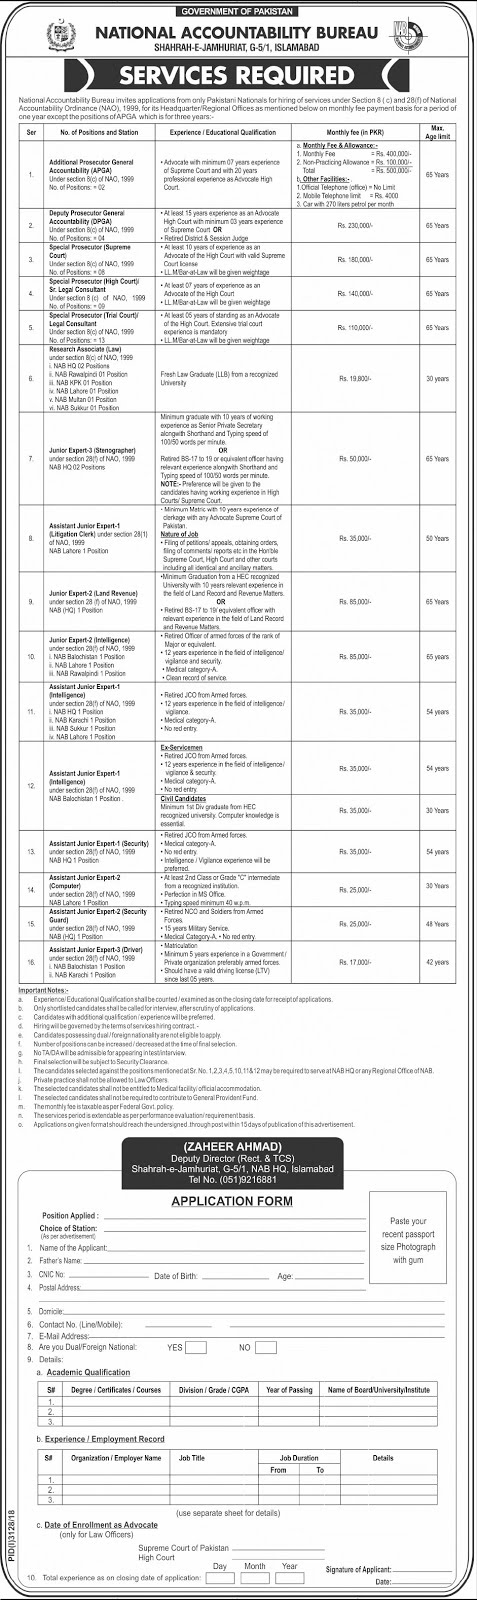 jobs in pakistan,nab jobs,national accountability bureau,national accountability bureau jobs,nab jobs 2018,jobs in nab,new jobs in pakistan,government jobs,nab jobs in pakistan,today jobs in pakistan,government jobs in pakistan,nab jobs 2019,online jobs in pakistan,jobs in nab 2018,nab,jobs in national accountability bureau,national accountability bureau nab jobs 2019